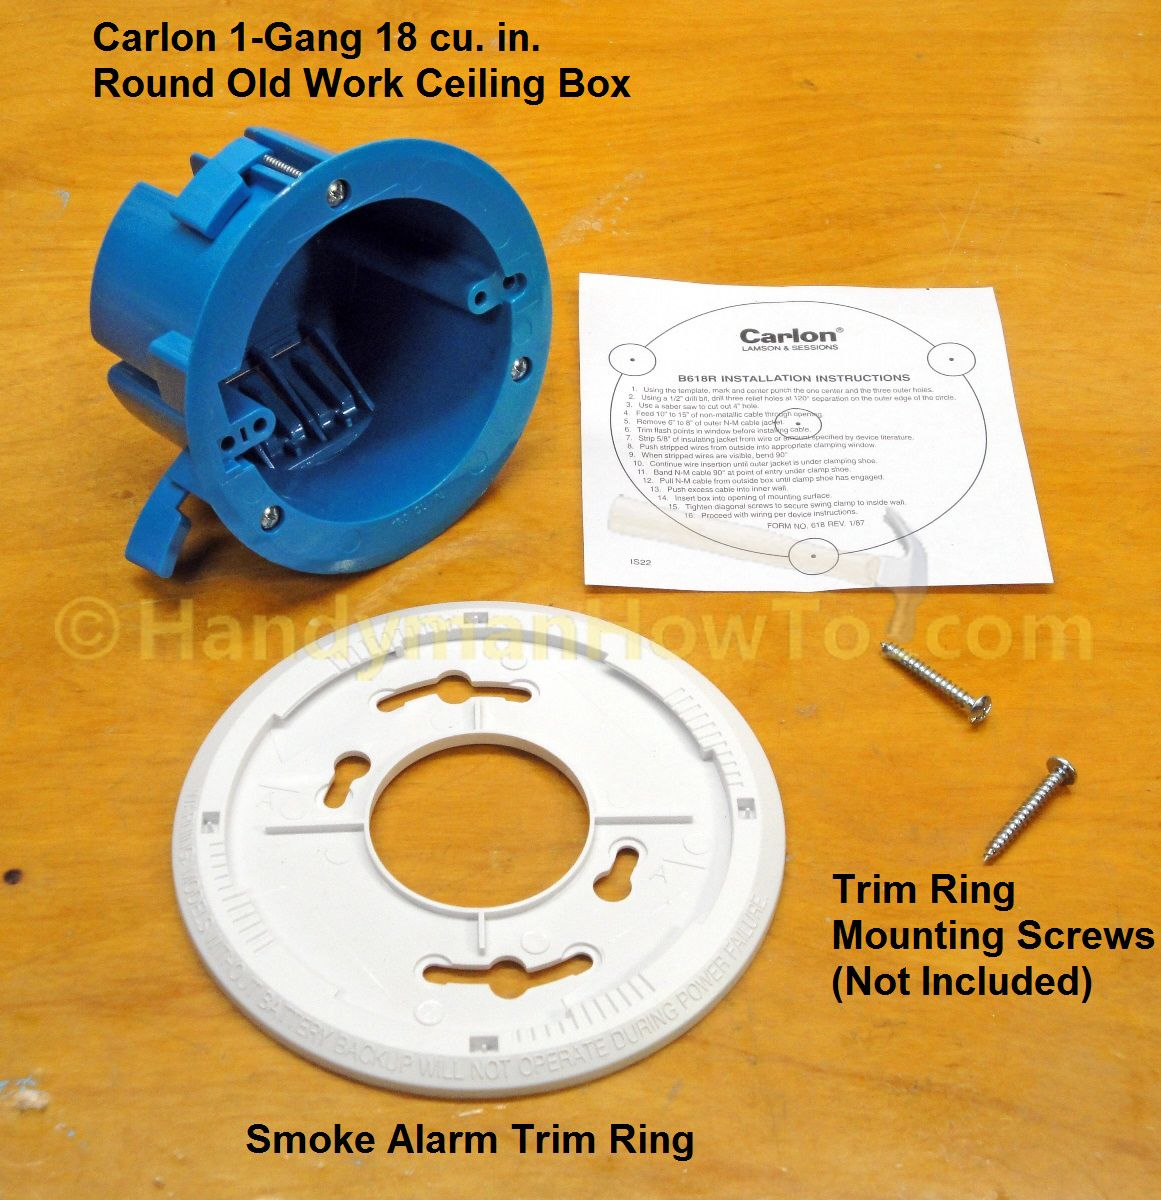 Carlton B618r Round Old Work Ceiling Box With Smoke Alarm Trim Plate Circuit